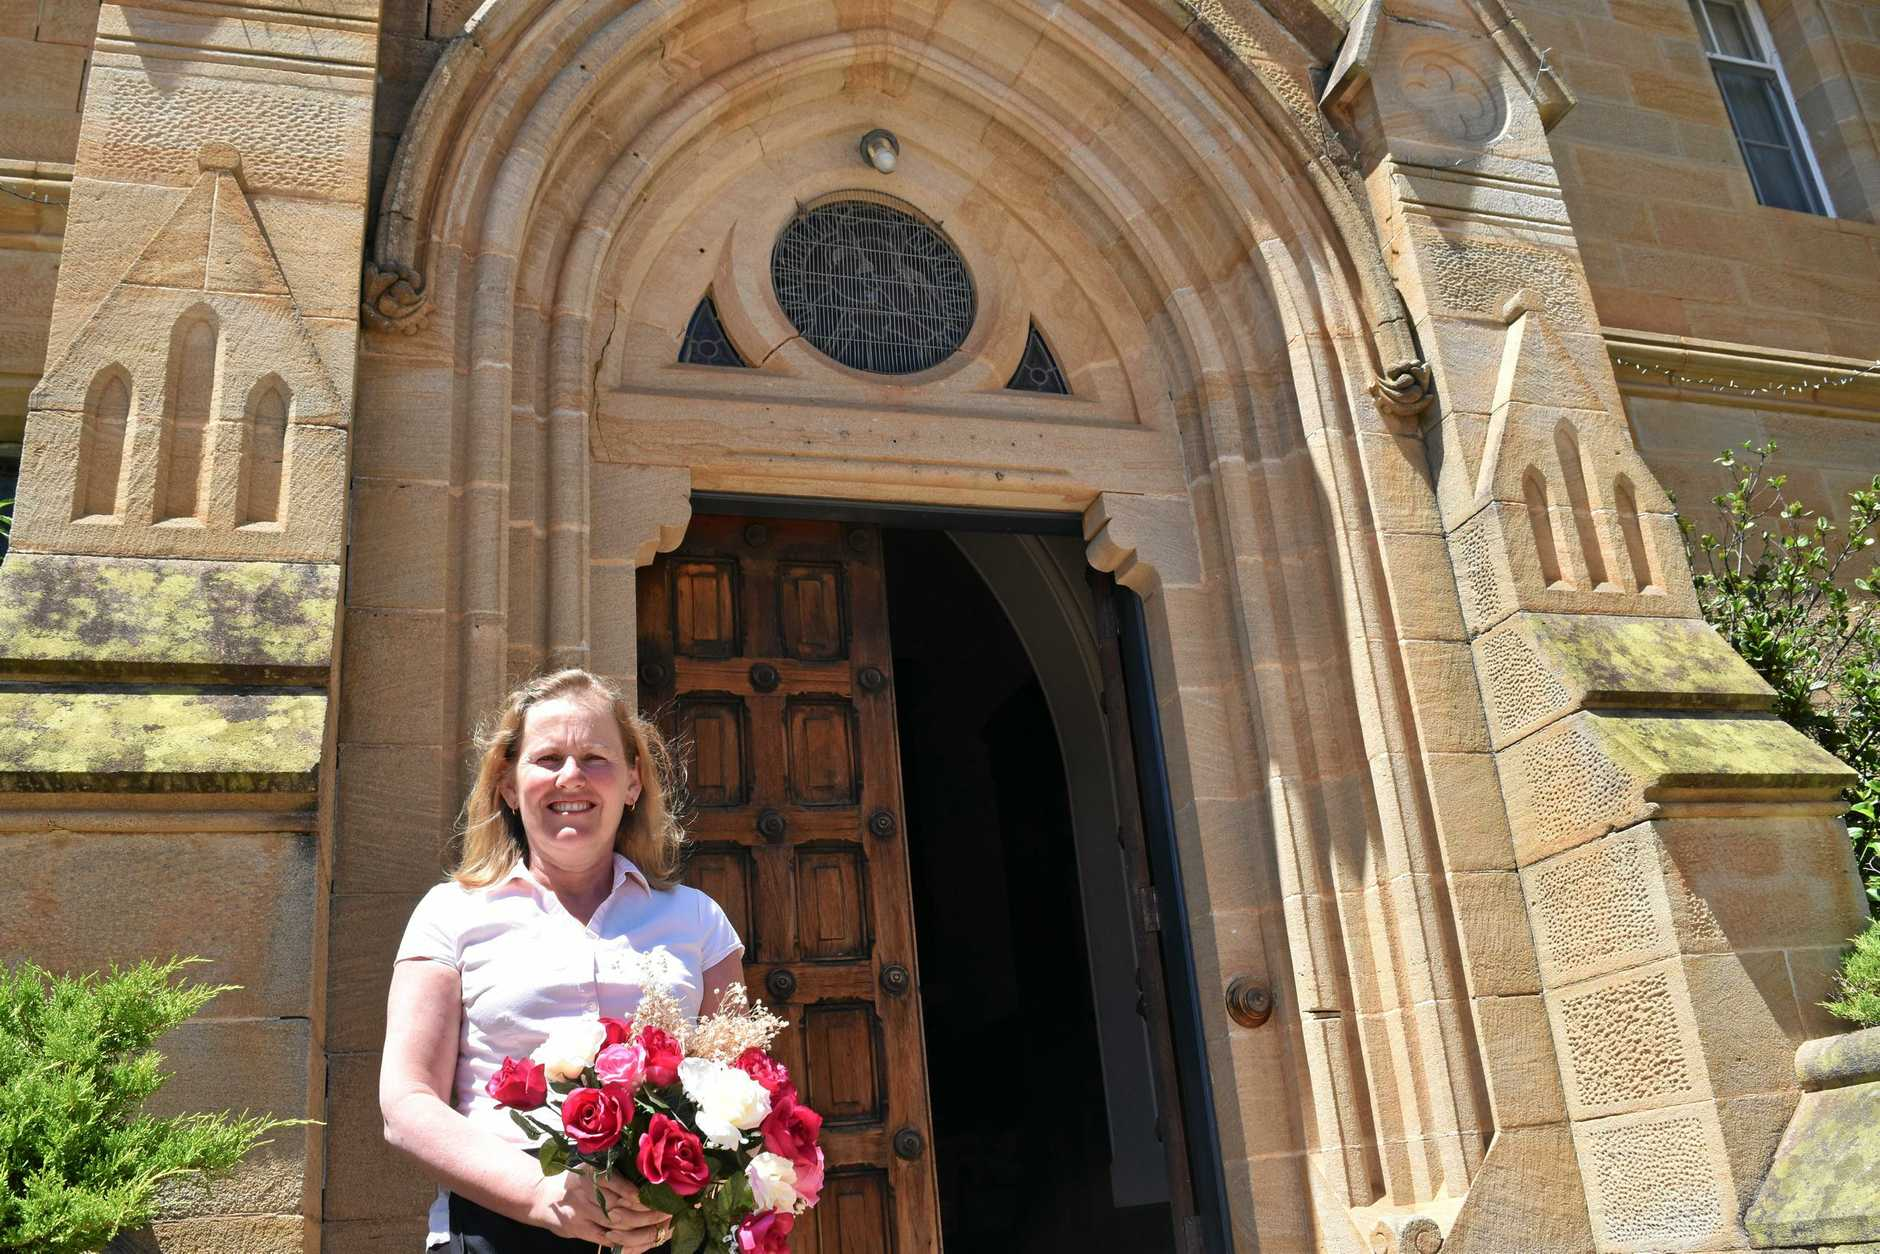 Abbey of the Roses owner Sonia Hunt is delighted to offer a free celebrant for qualifying same-sex marriages.